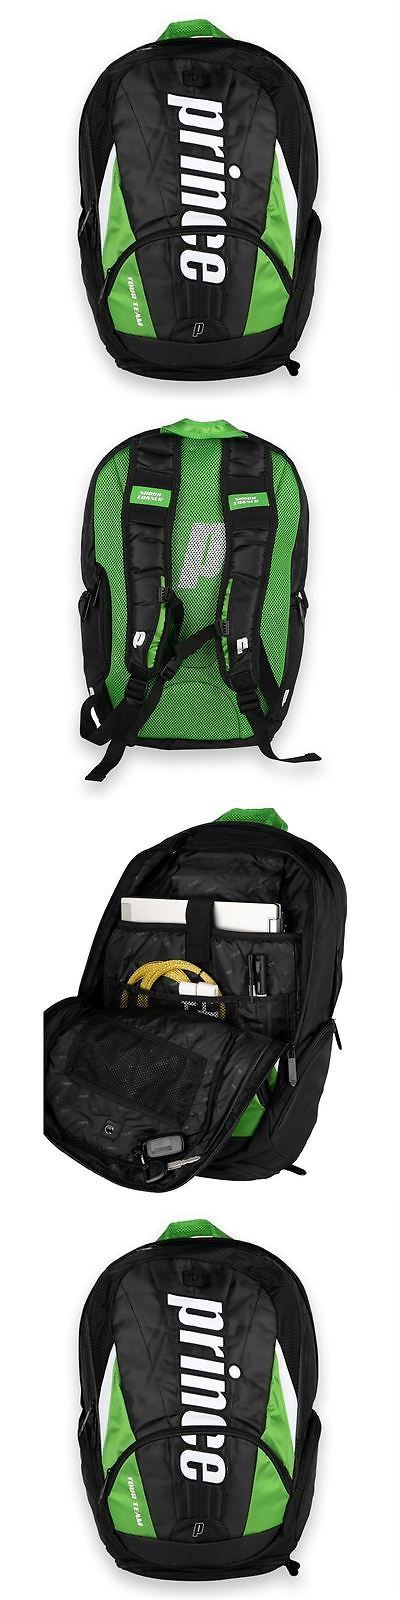 Other Racquet Sport Accs 159161: Prince Tour Team Green Nylon Backpack Tennis Bag -> BUY IT NOW ONLY: $47.44 on eBay!